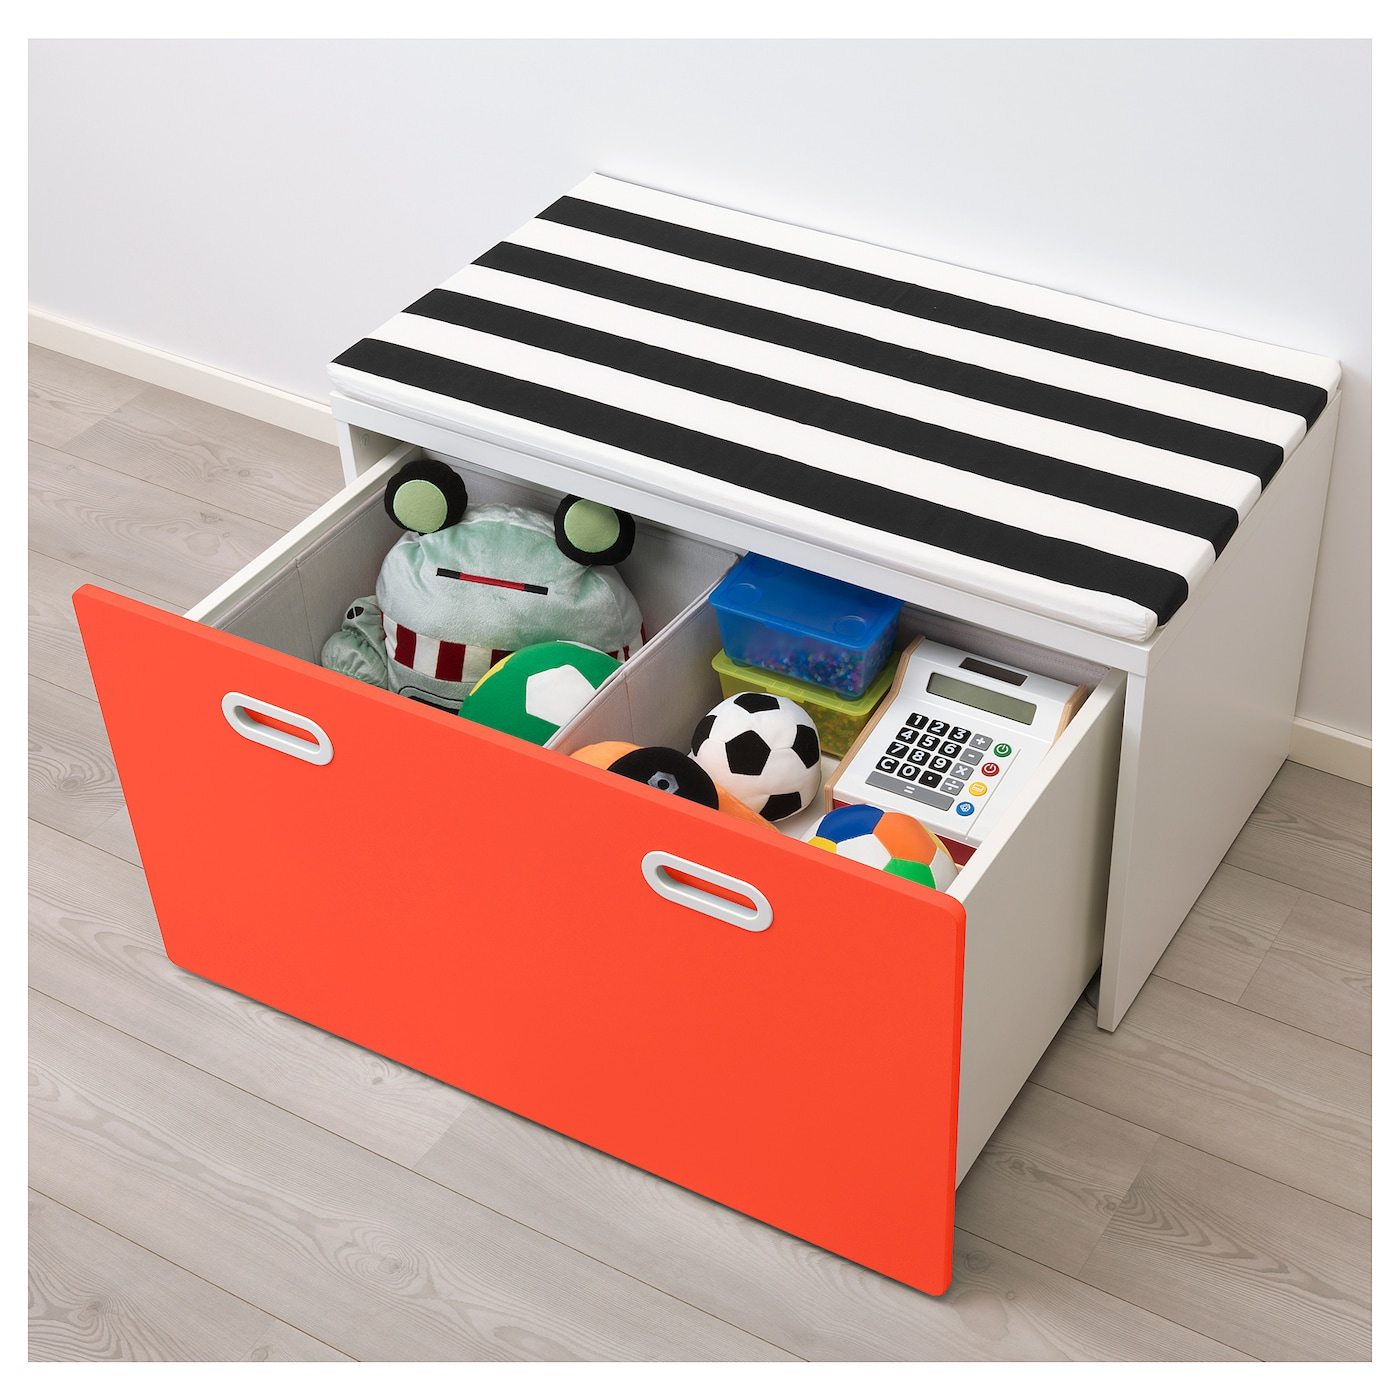 fritids stuva banc avec rangement jouets blanc rouge 90 x 50 x 50 cm ikea. Black Bedroom Furniture Sets. Home Design Ideas